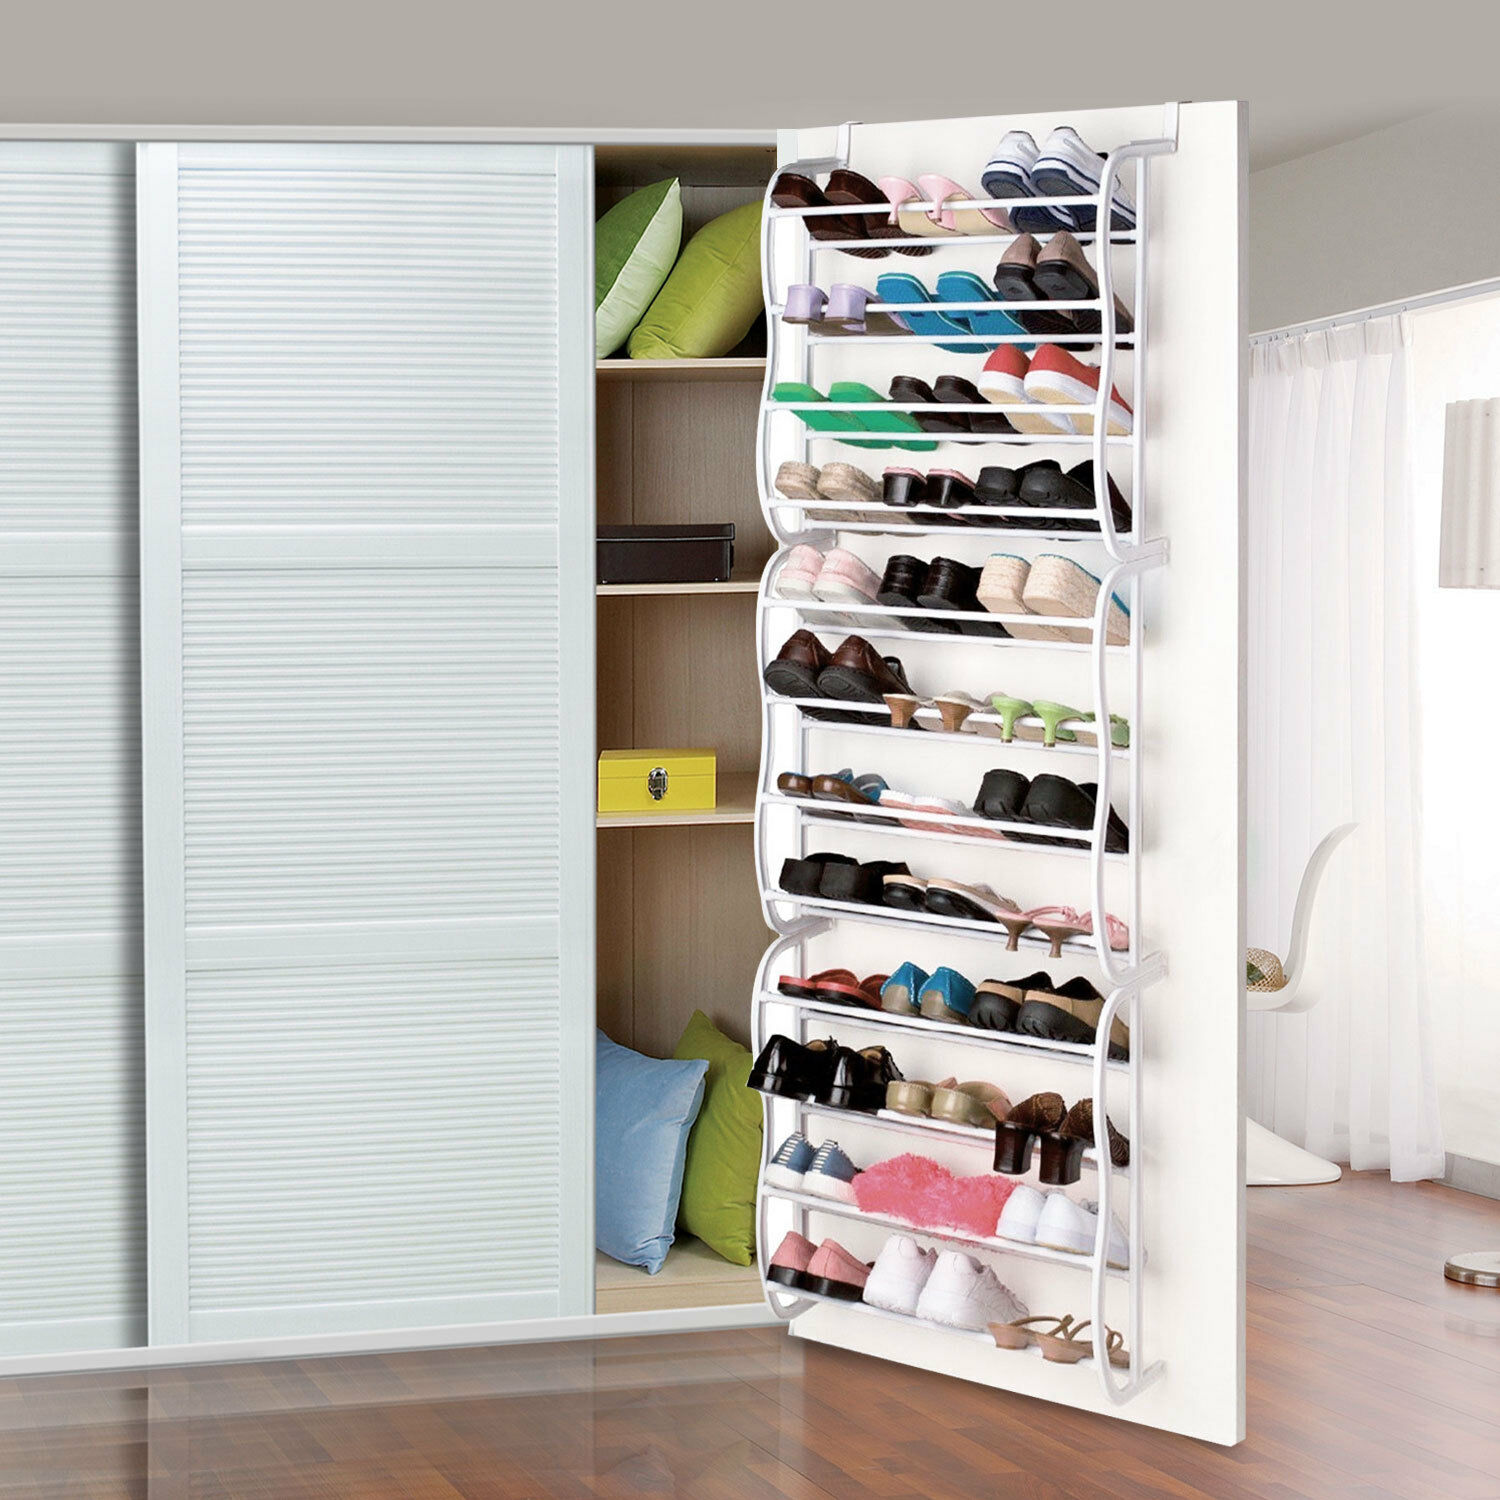 Over-The-Door Shoe Rack for 36 Pair Wall Hanging Closet Orga